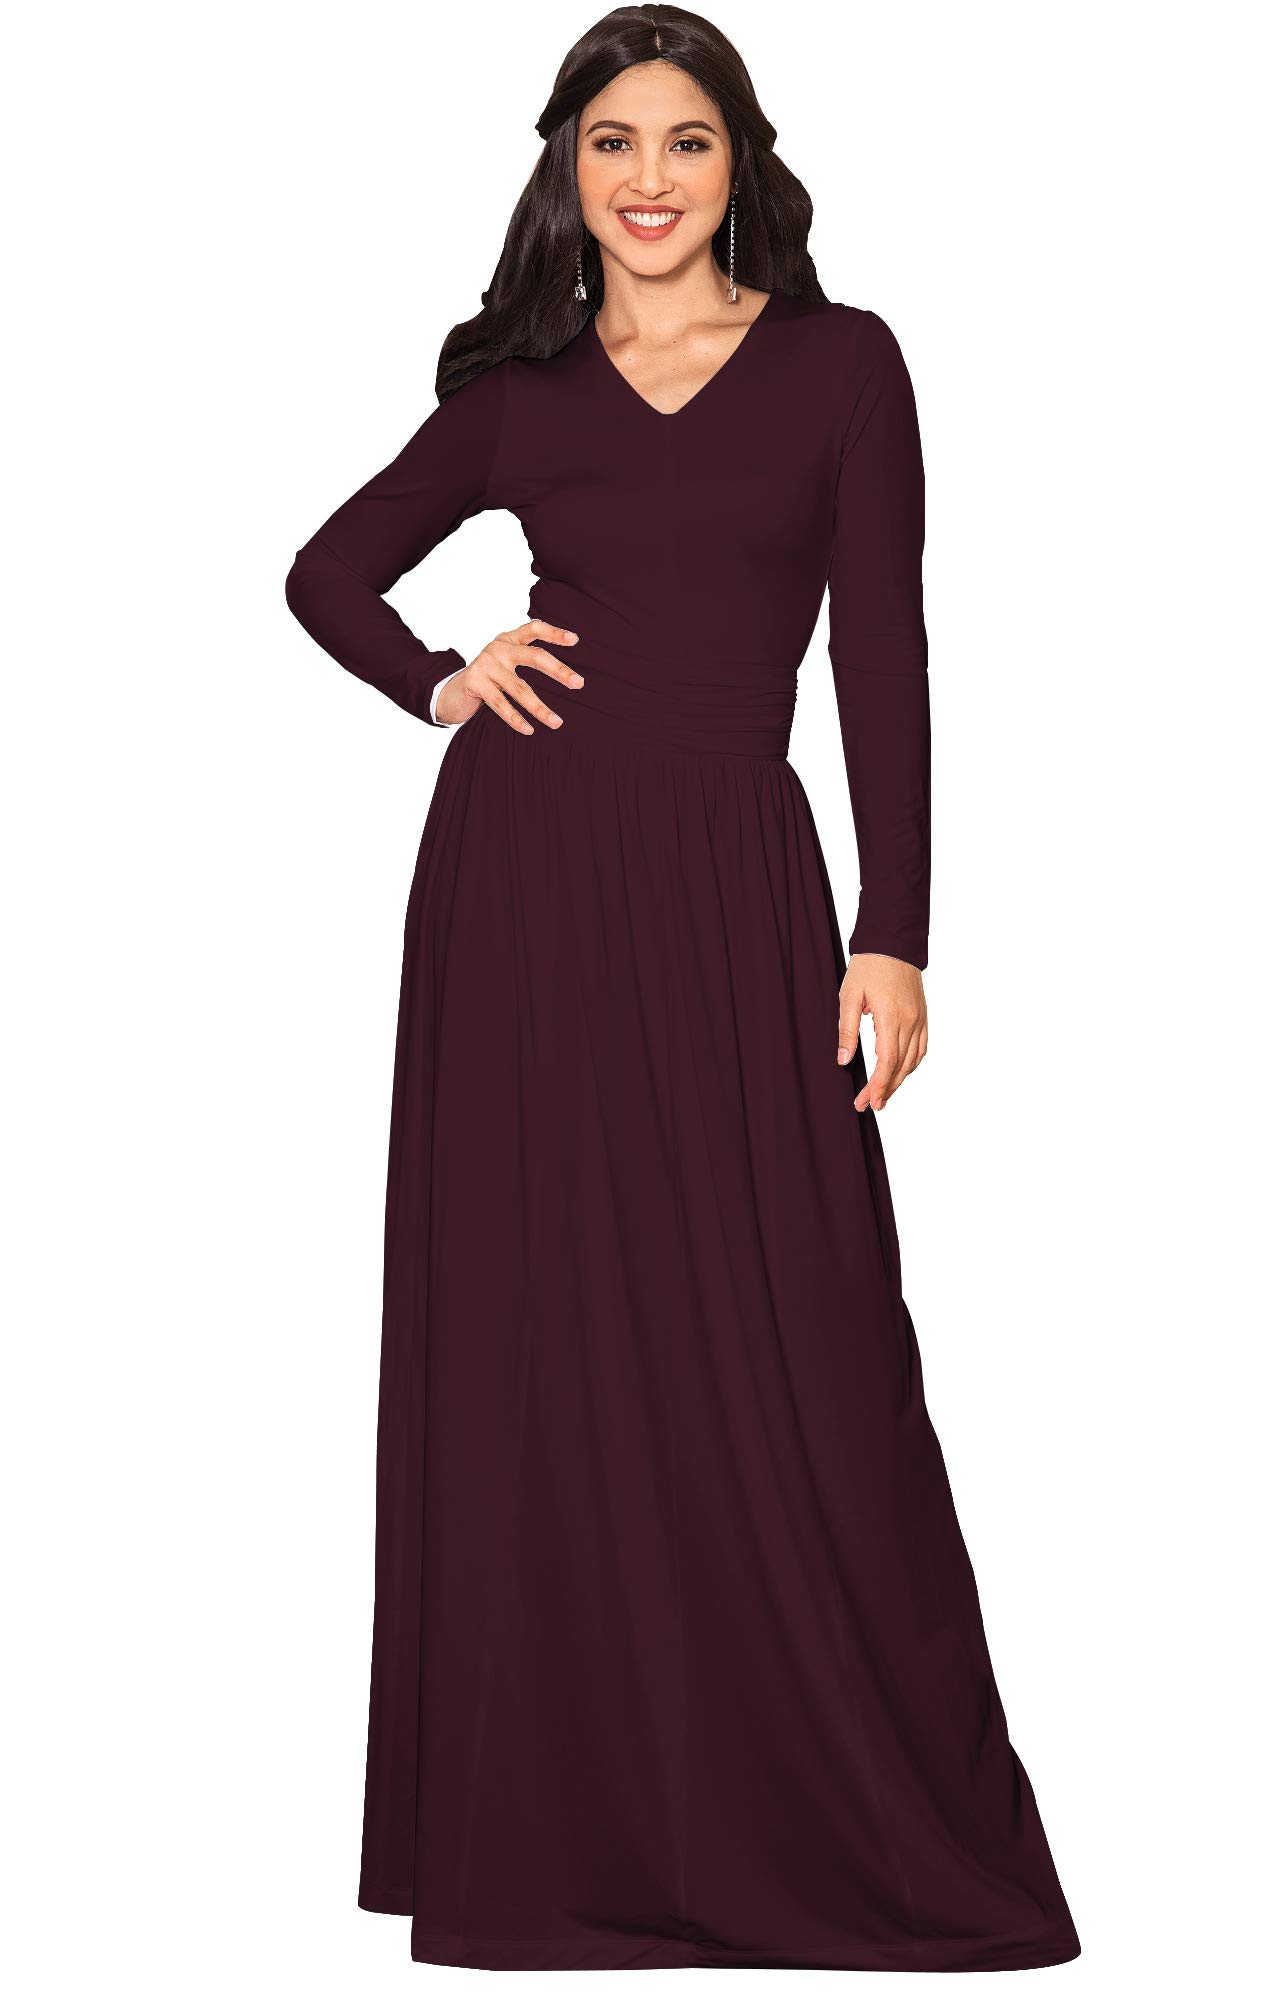 1e326aa3305 KOH KOH Petite Womens Long Sleeve Floor Full Length V-Neck Ruched Empire  Waist Formal Fall Winter Wedding Abaya Modest Muslim Evening Gown Gowns  Maxi Dress ...